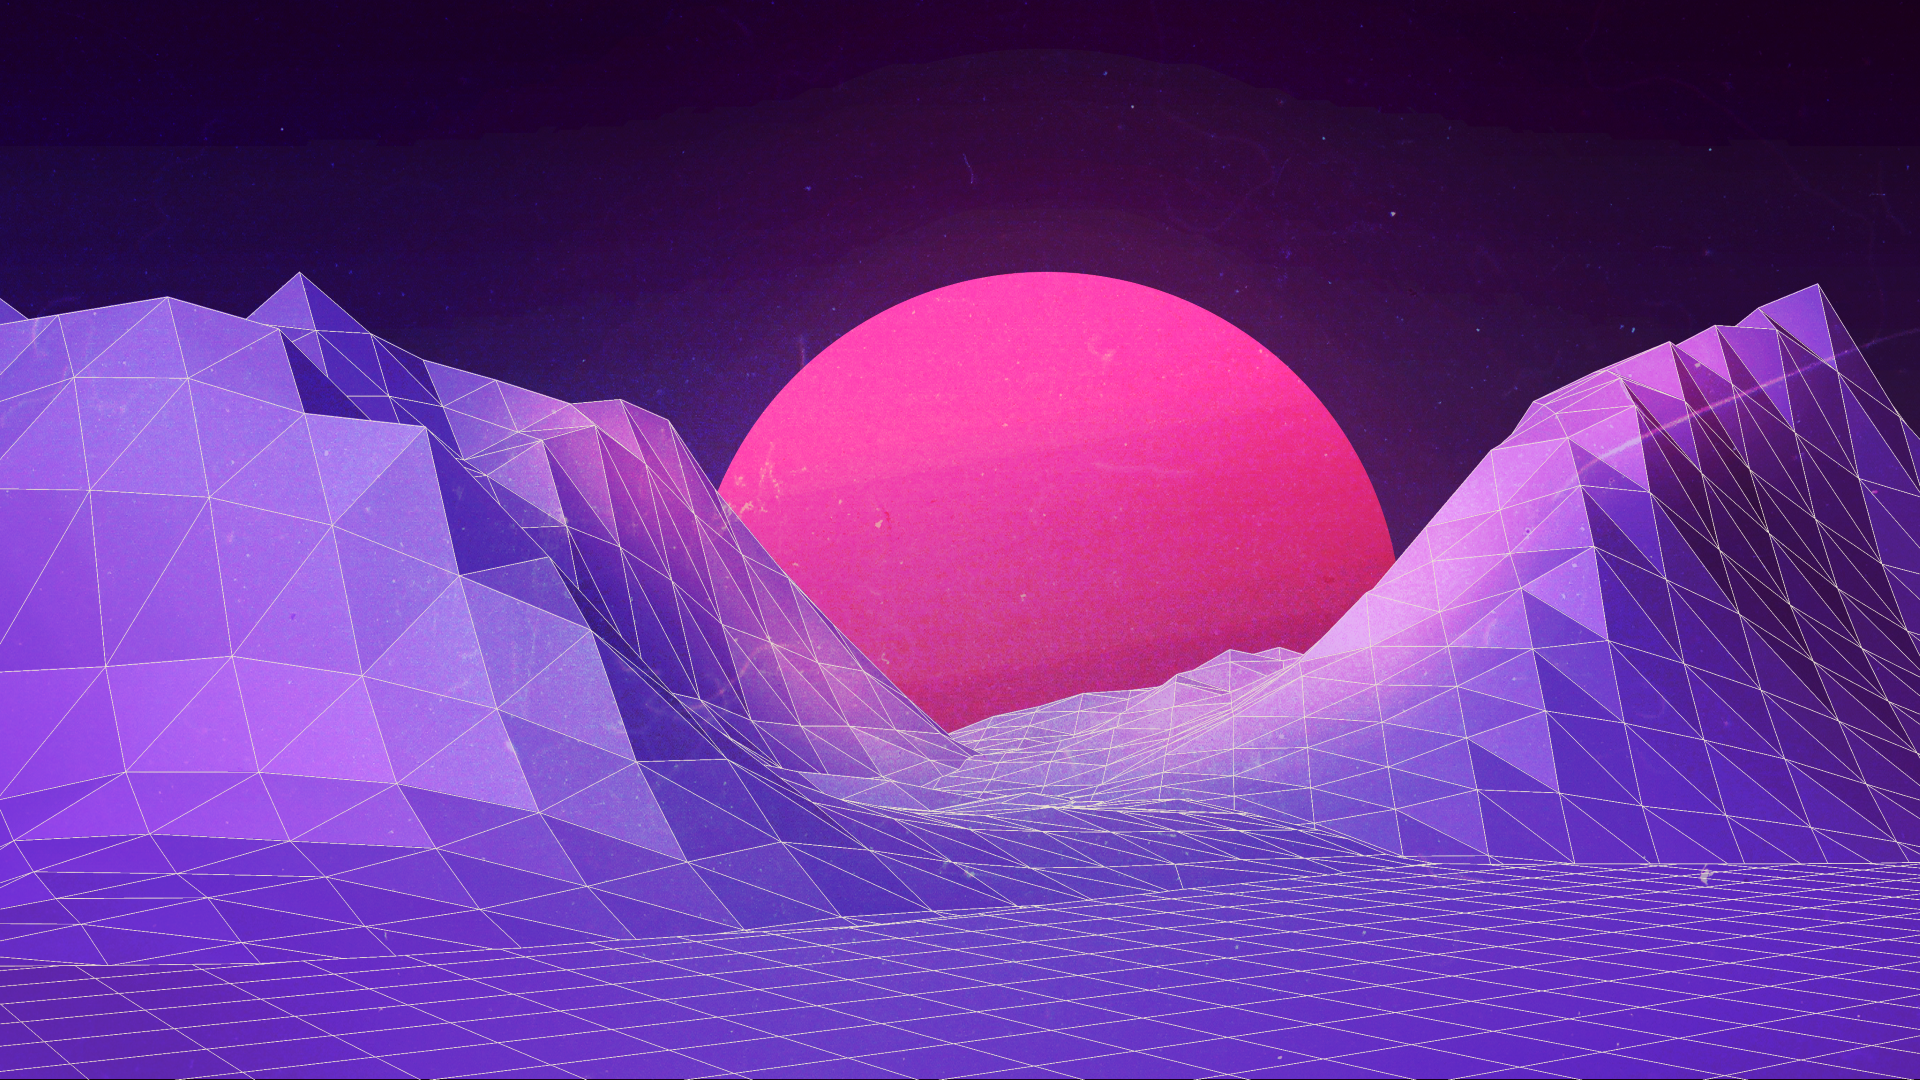 idk aesthetic vaporwave Cyberpunk and Psychedelic 1920x1080